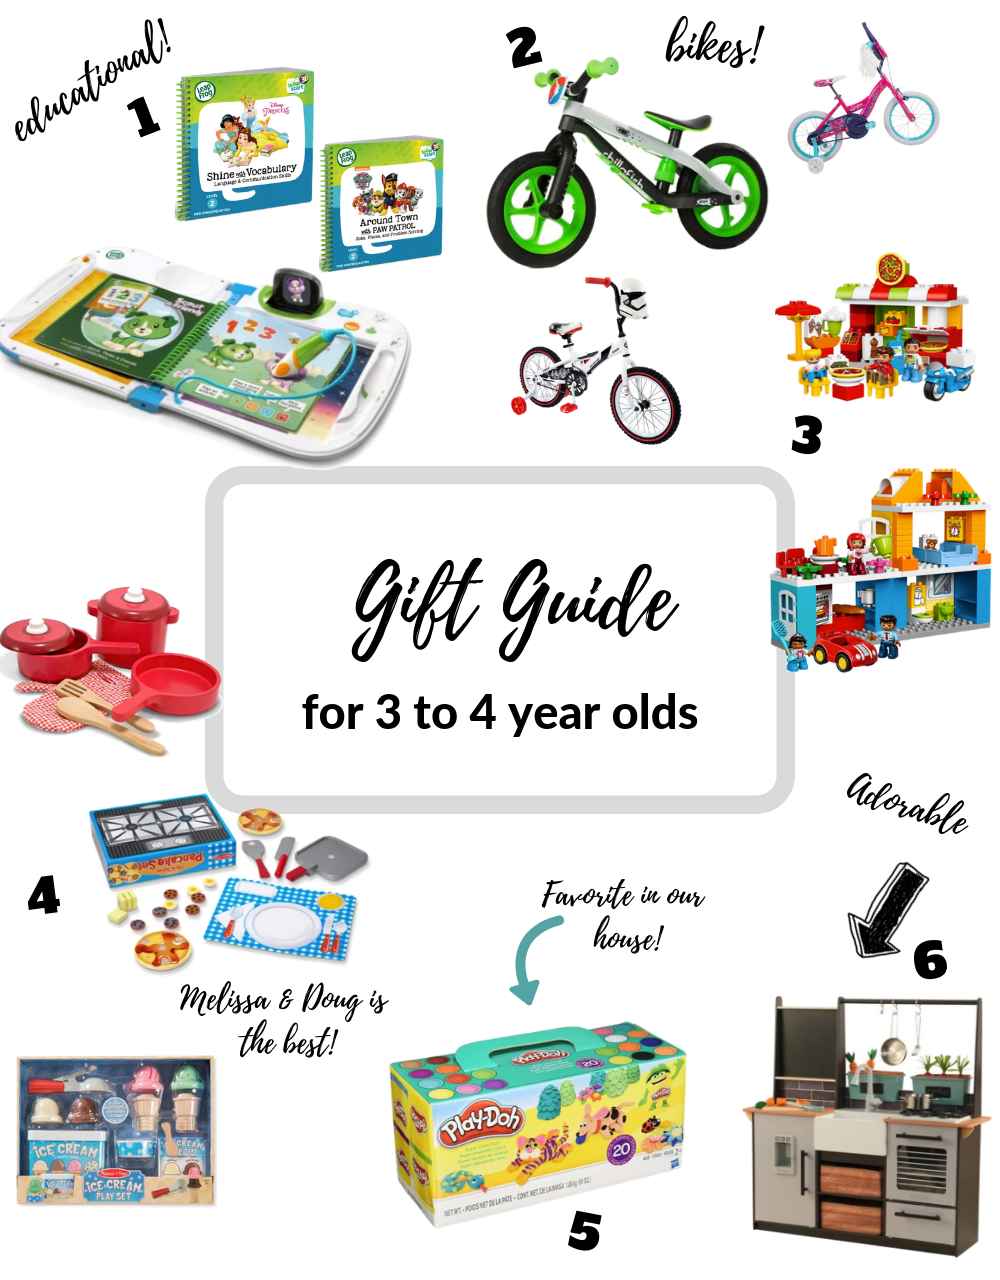 Copy of gift guide for 1-2 year old.png